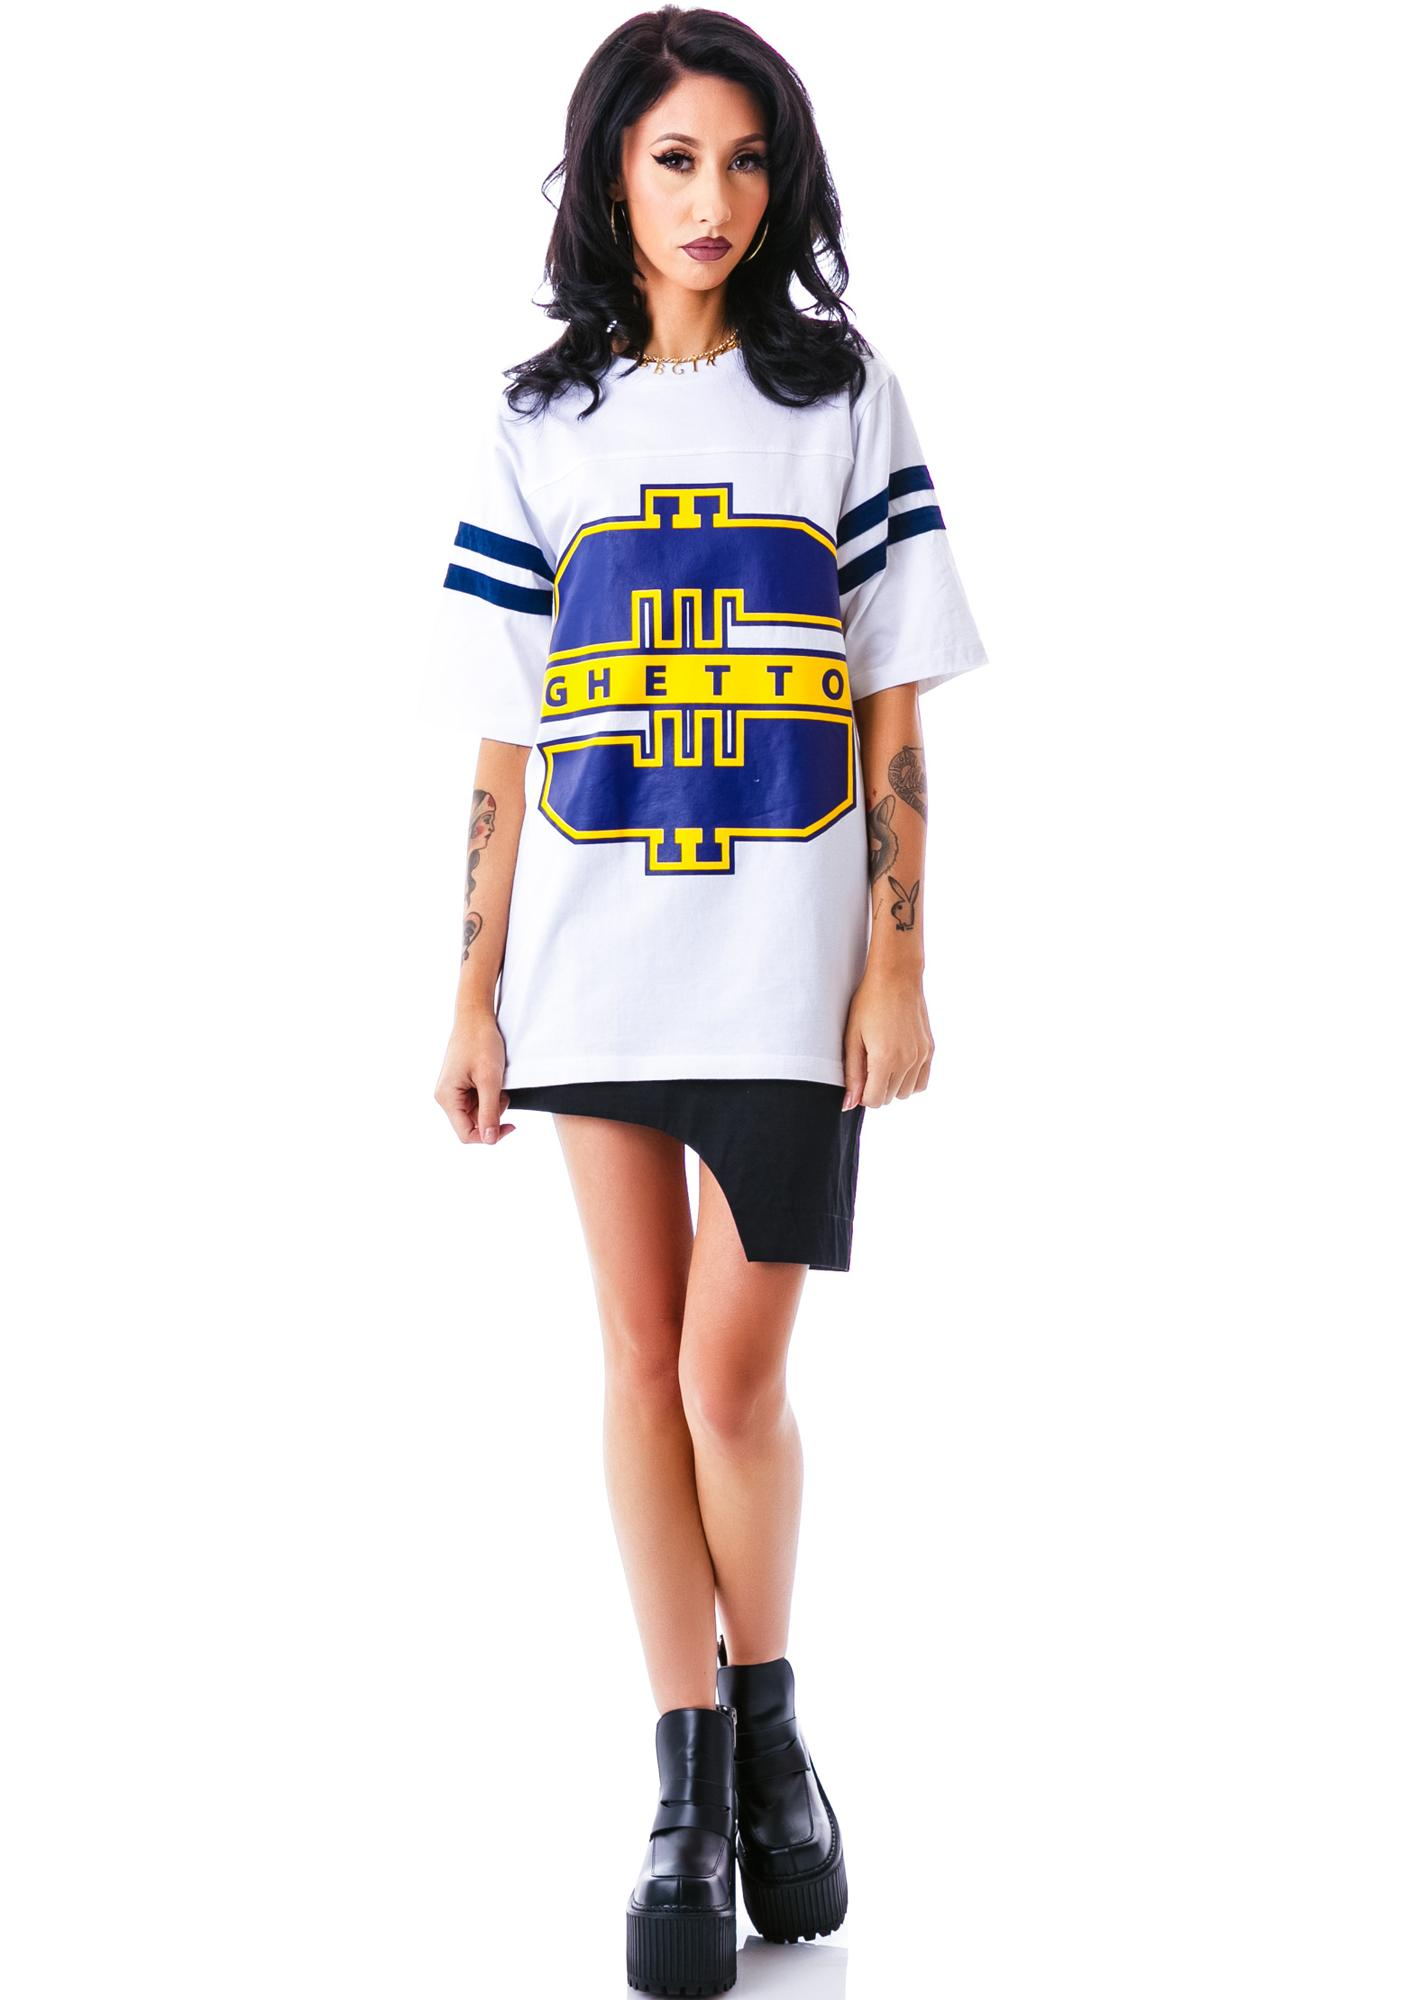 Joyrich Ghetto Logo Athletic Tee